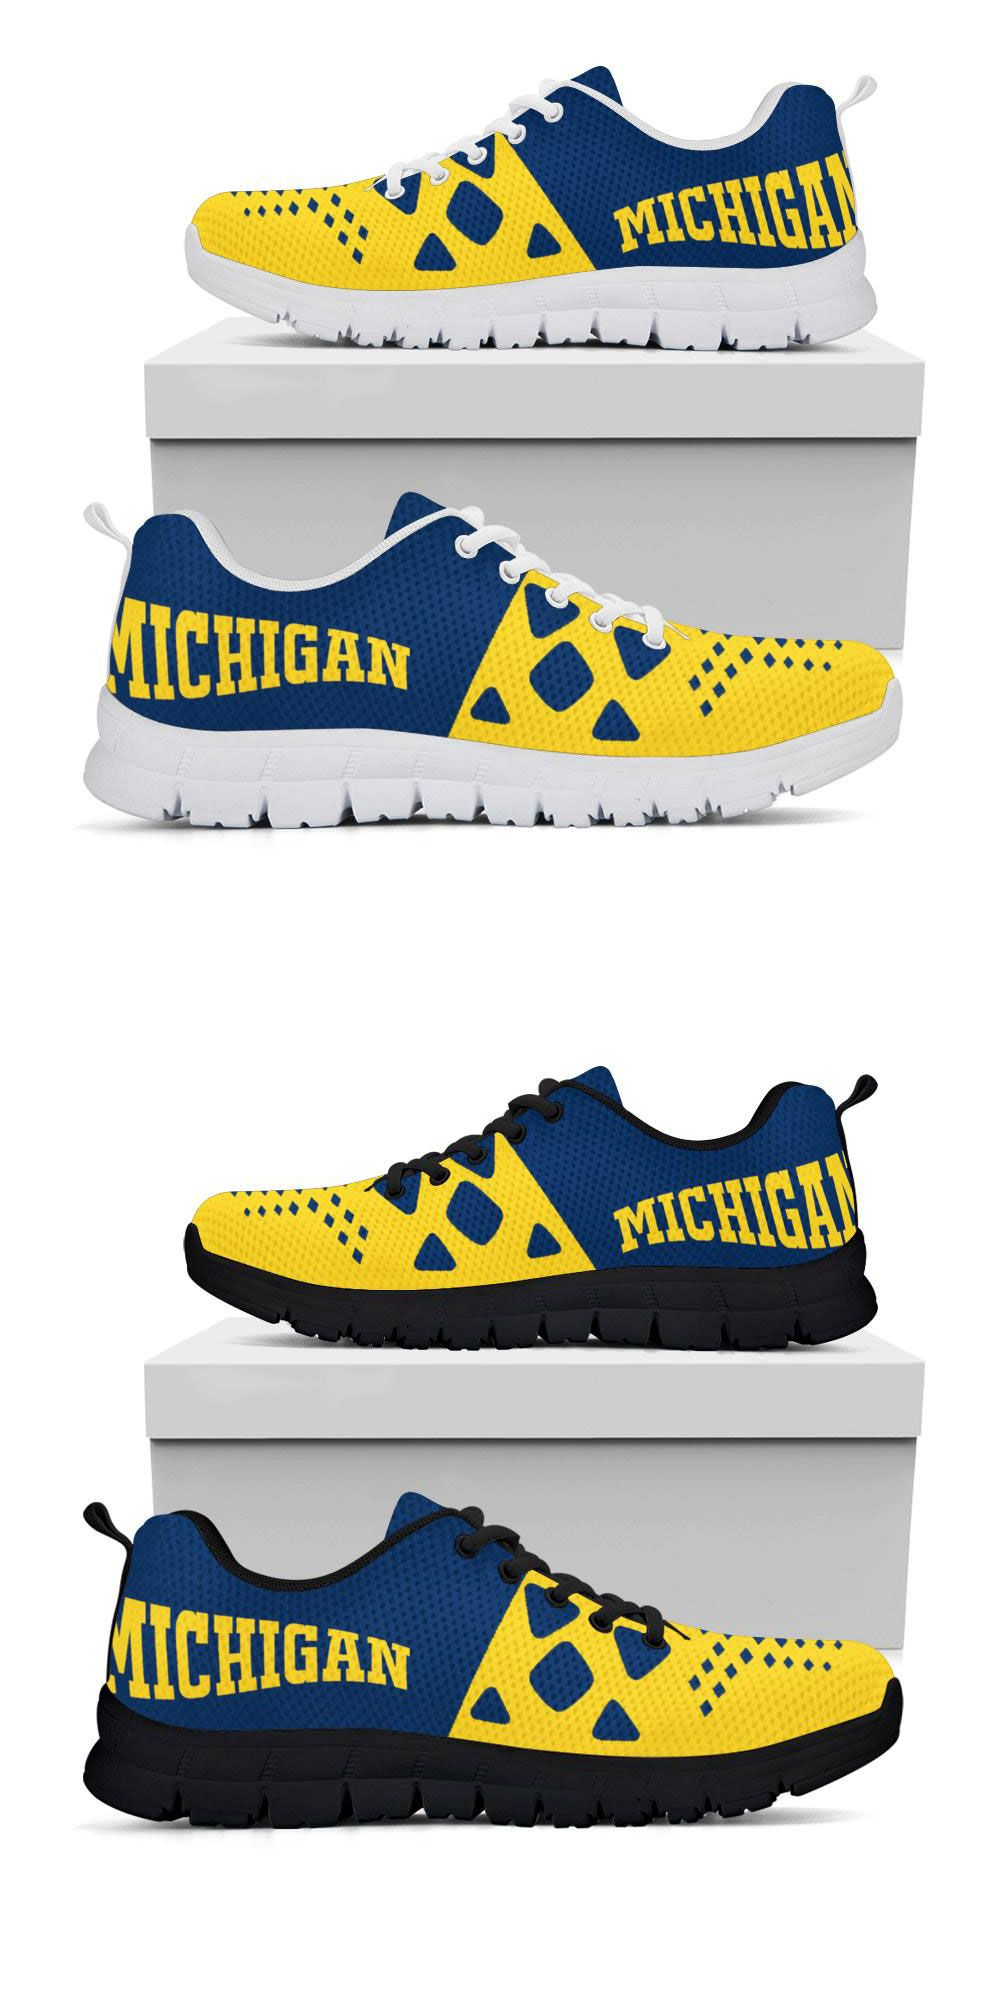 Michigan Running Shoes | Michigan Gear | Green bay packers